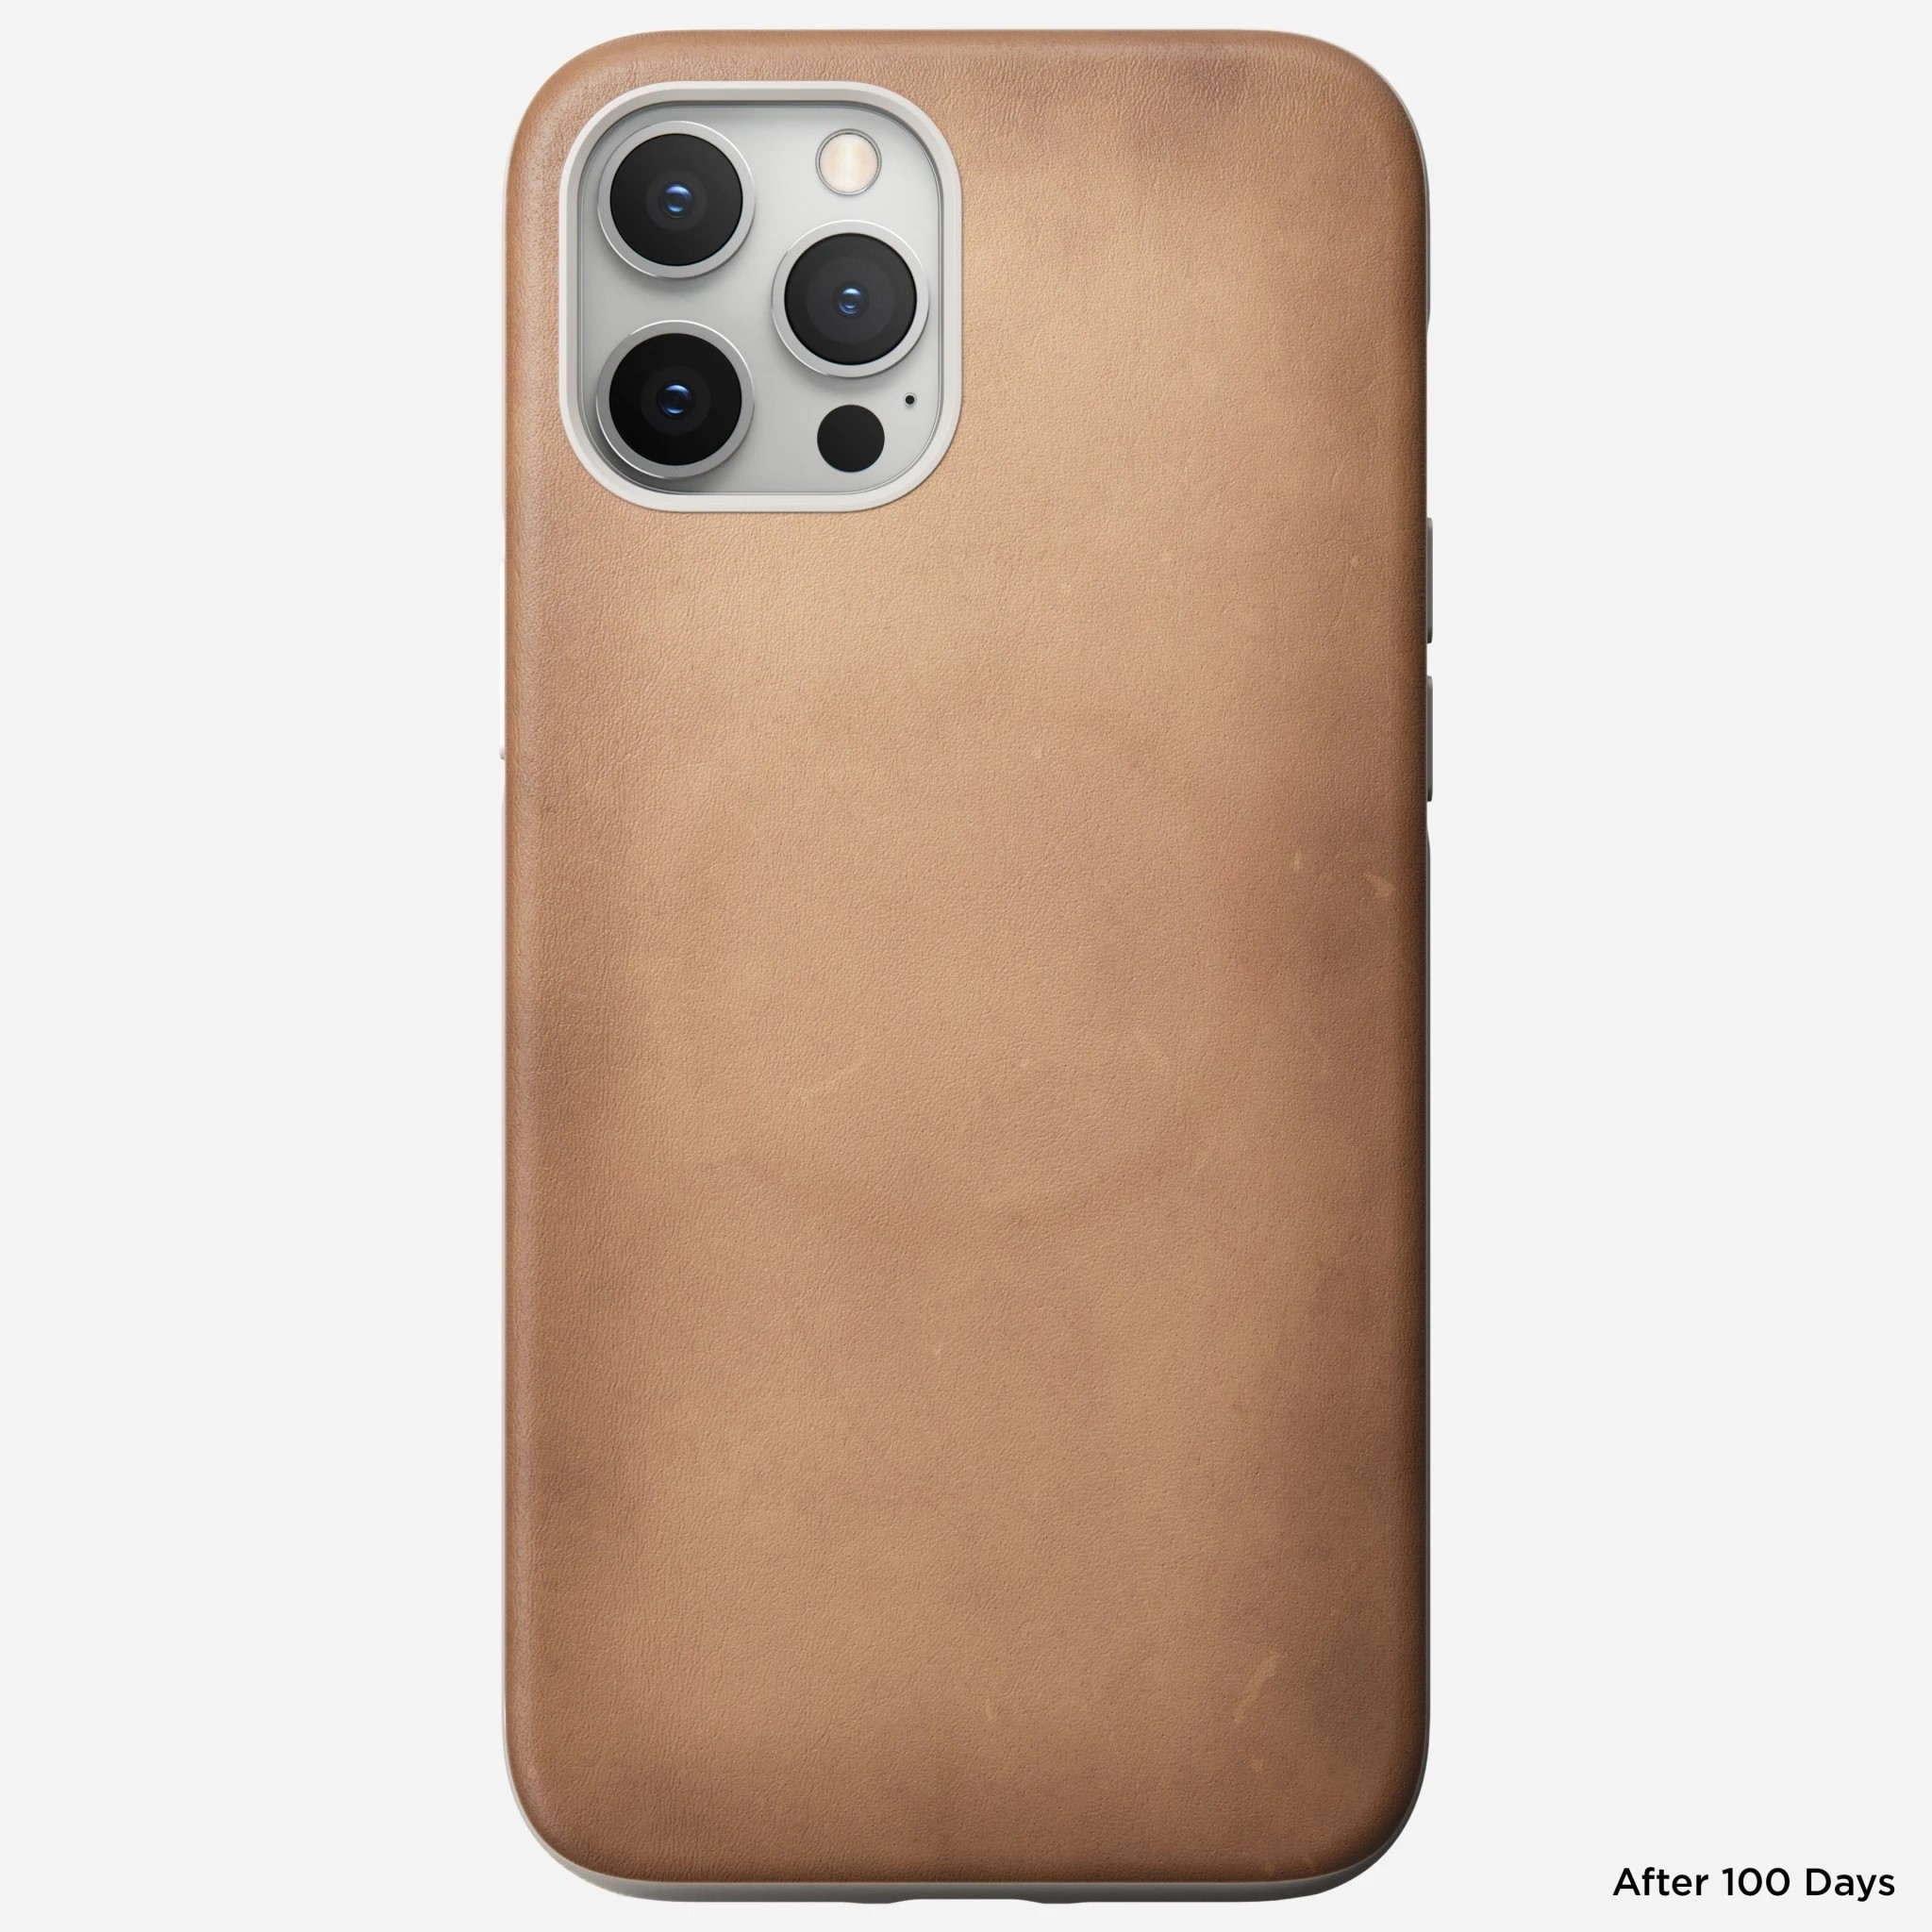 Nomad - MagSafe Leather Case - iPhone 12 Pro Max - Natural, NM01973485